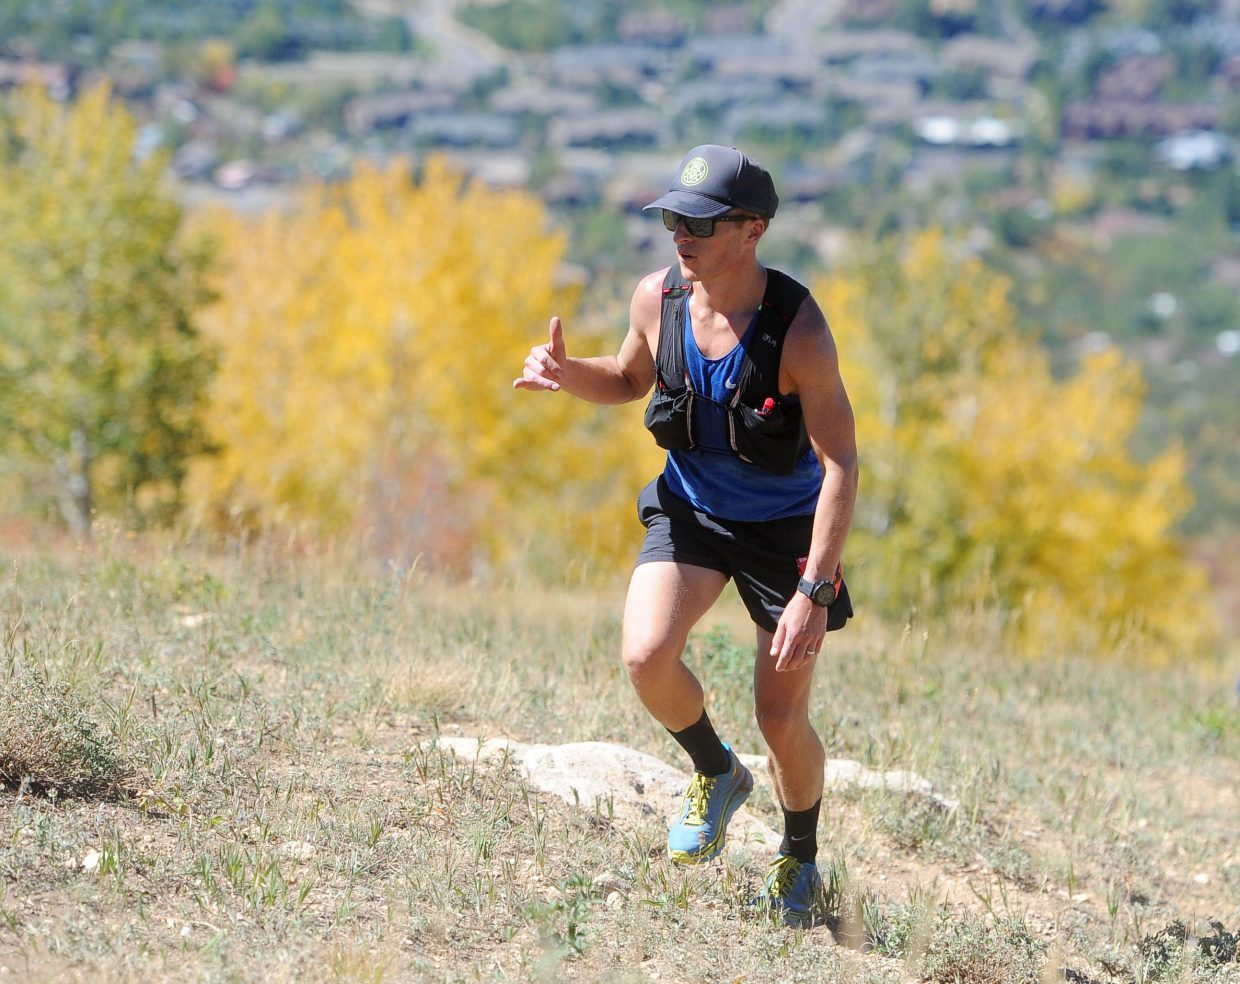 Michael Dicanio from Maplewood, New Jersey, climbs up Steamboat Ski Area in the Run Rabbit Run 100 on Friday, Sept. 14.